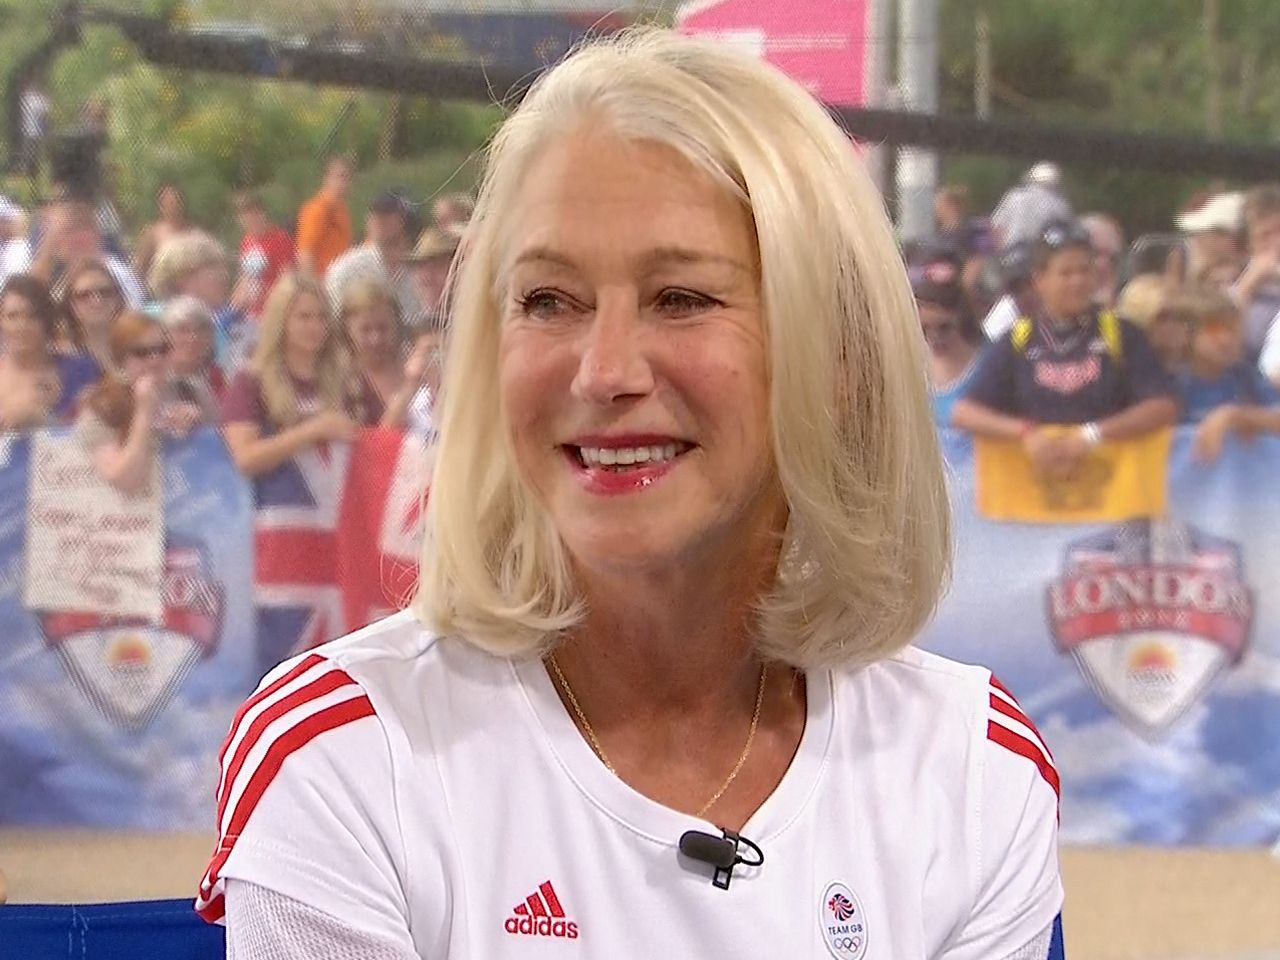 Helen Mirren: 'I'm so into the Olympic spirit.'